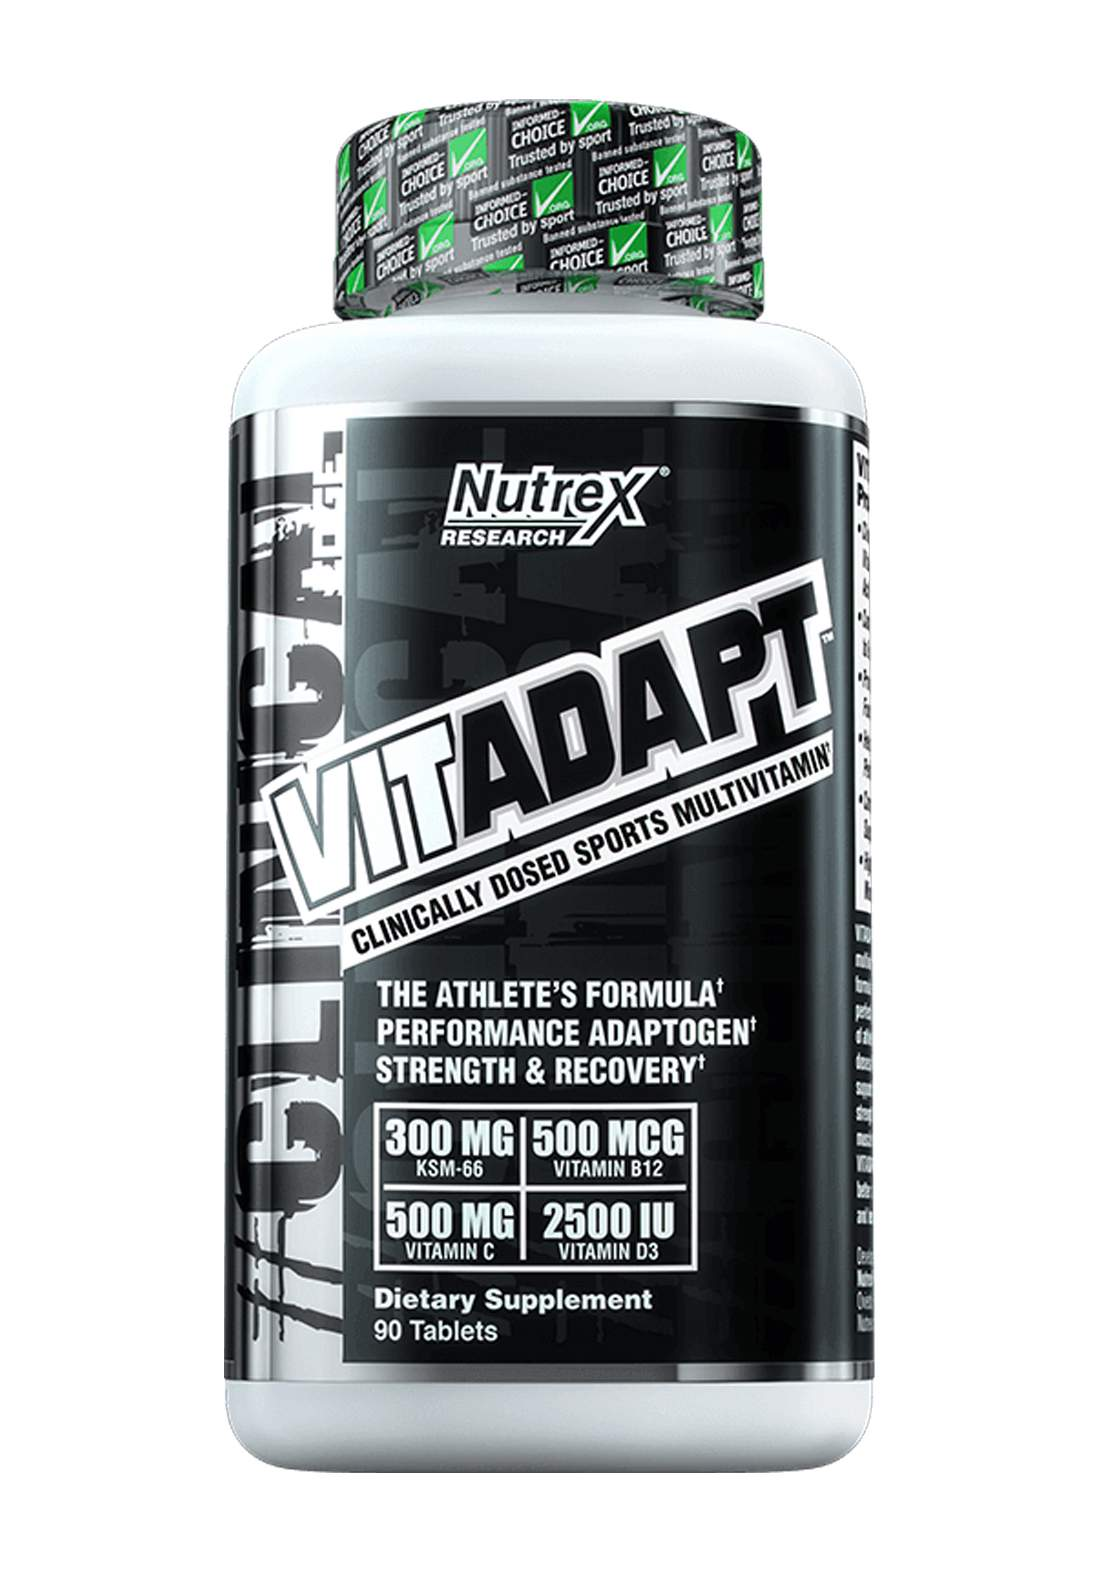 Nutrex VitaAdapt Clinically Dosed Sports MultiVitamin 90 Tablets   مكمل غذائي